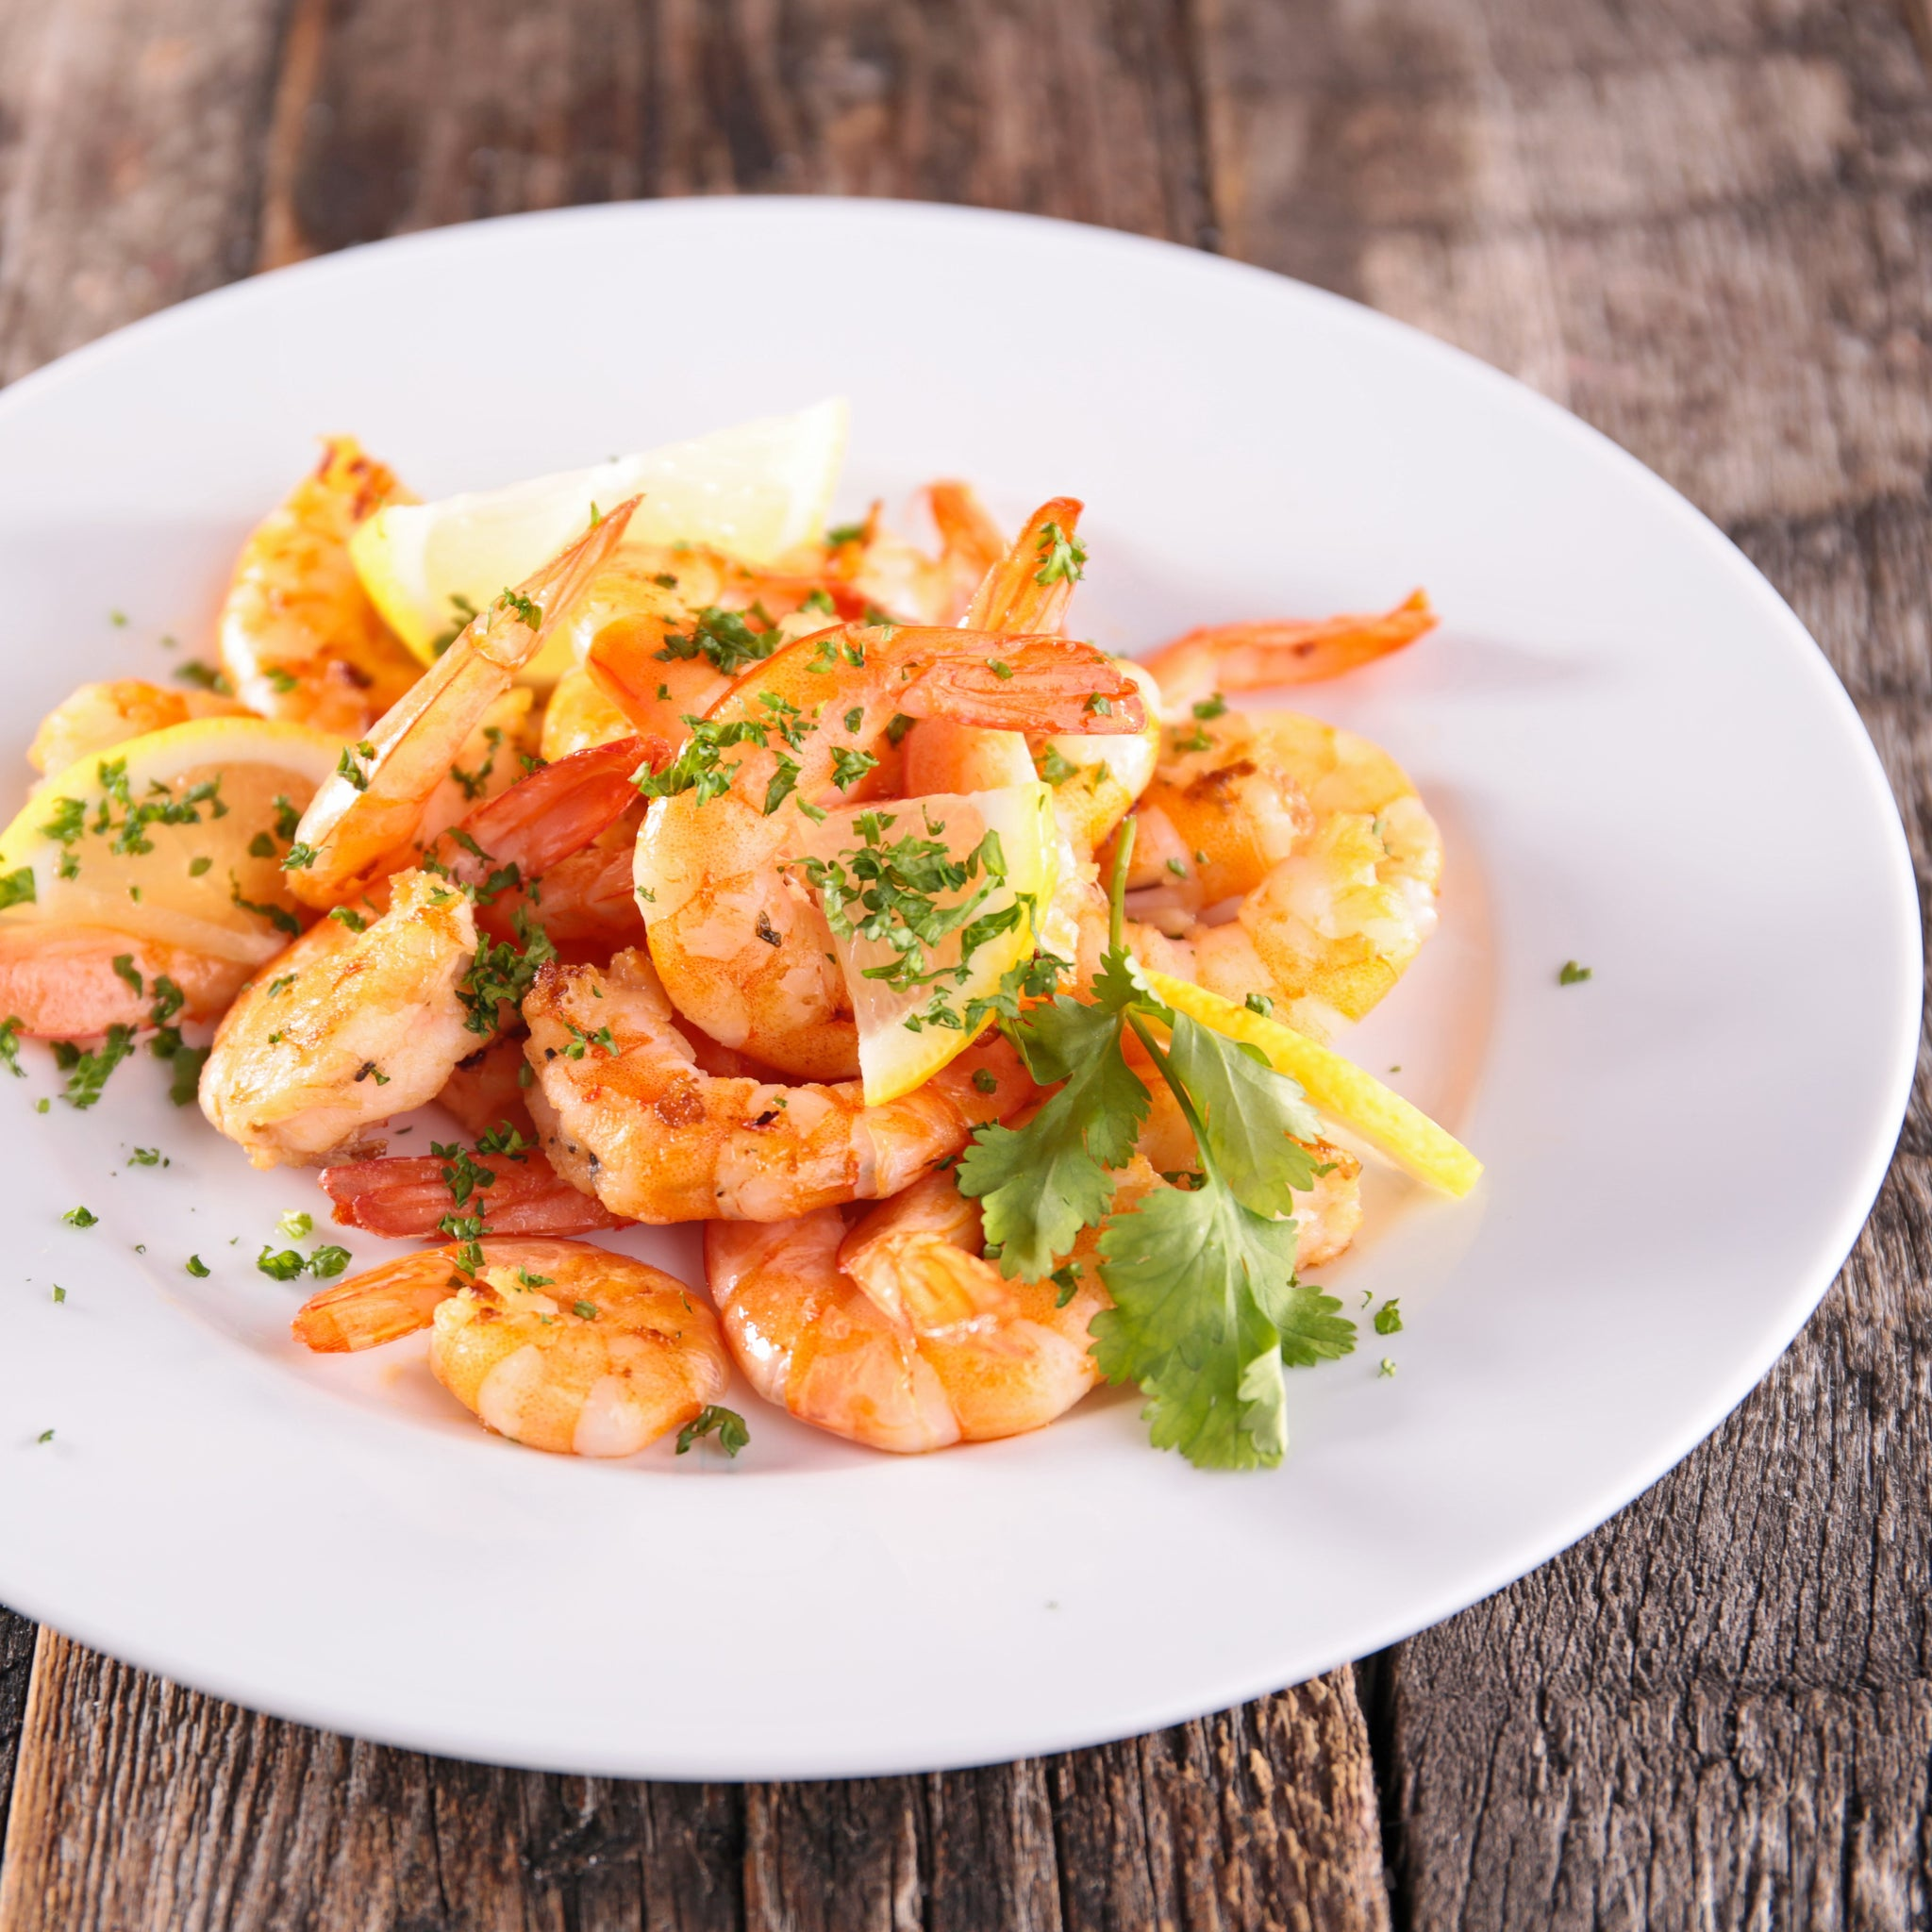 Family Shrimp - Serves 4